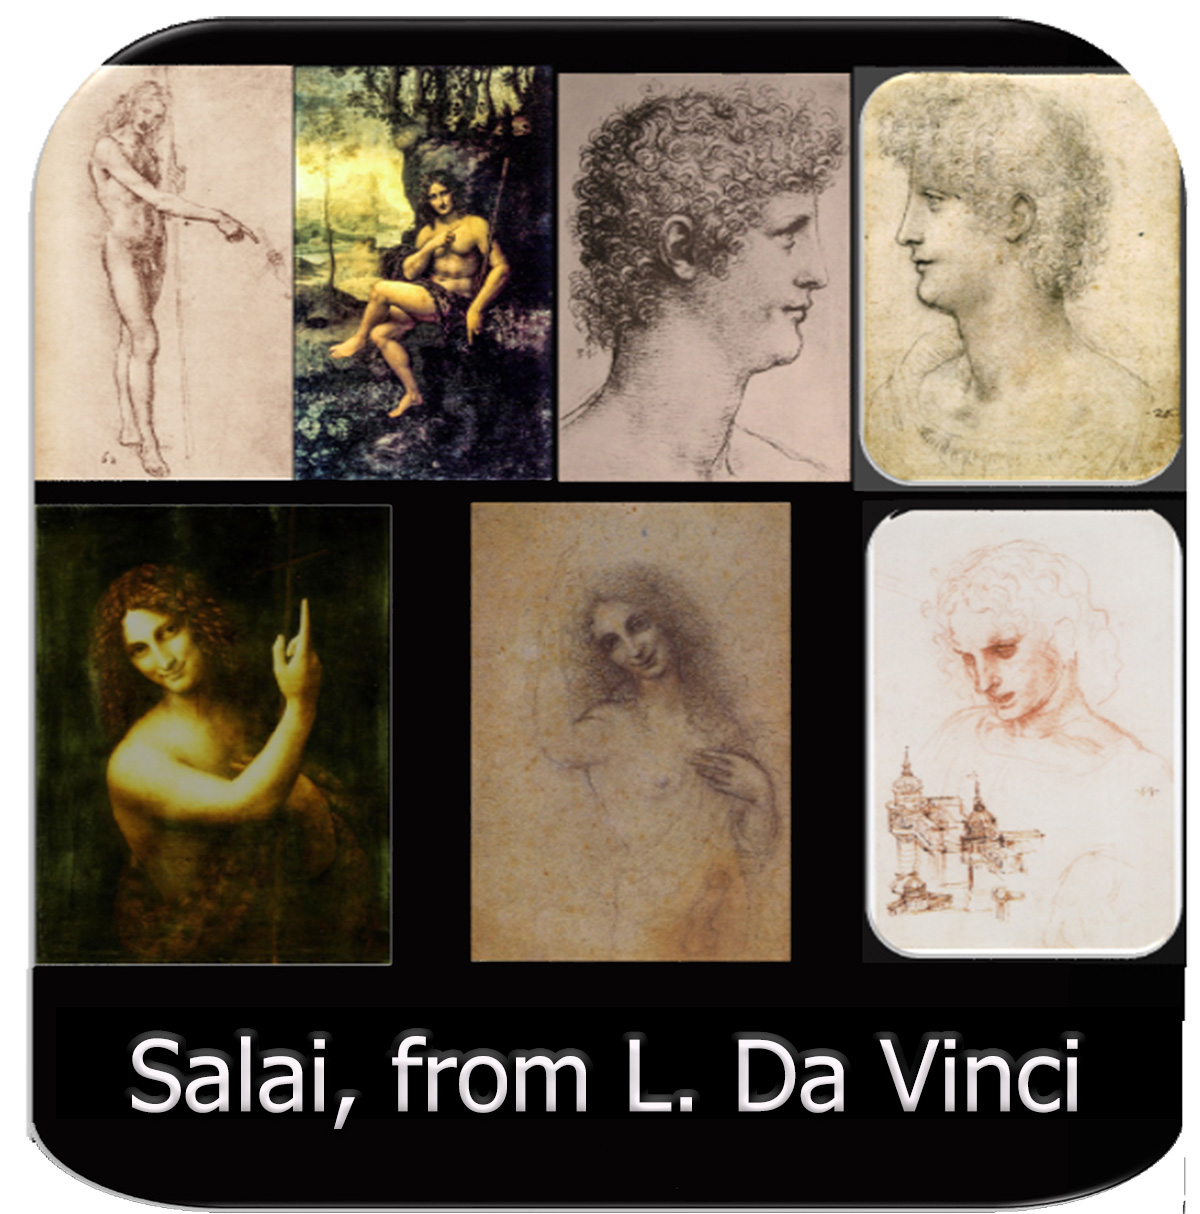 Salai drawings from Da Vinci